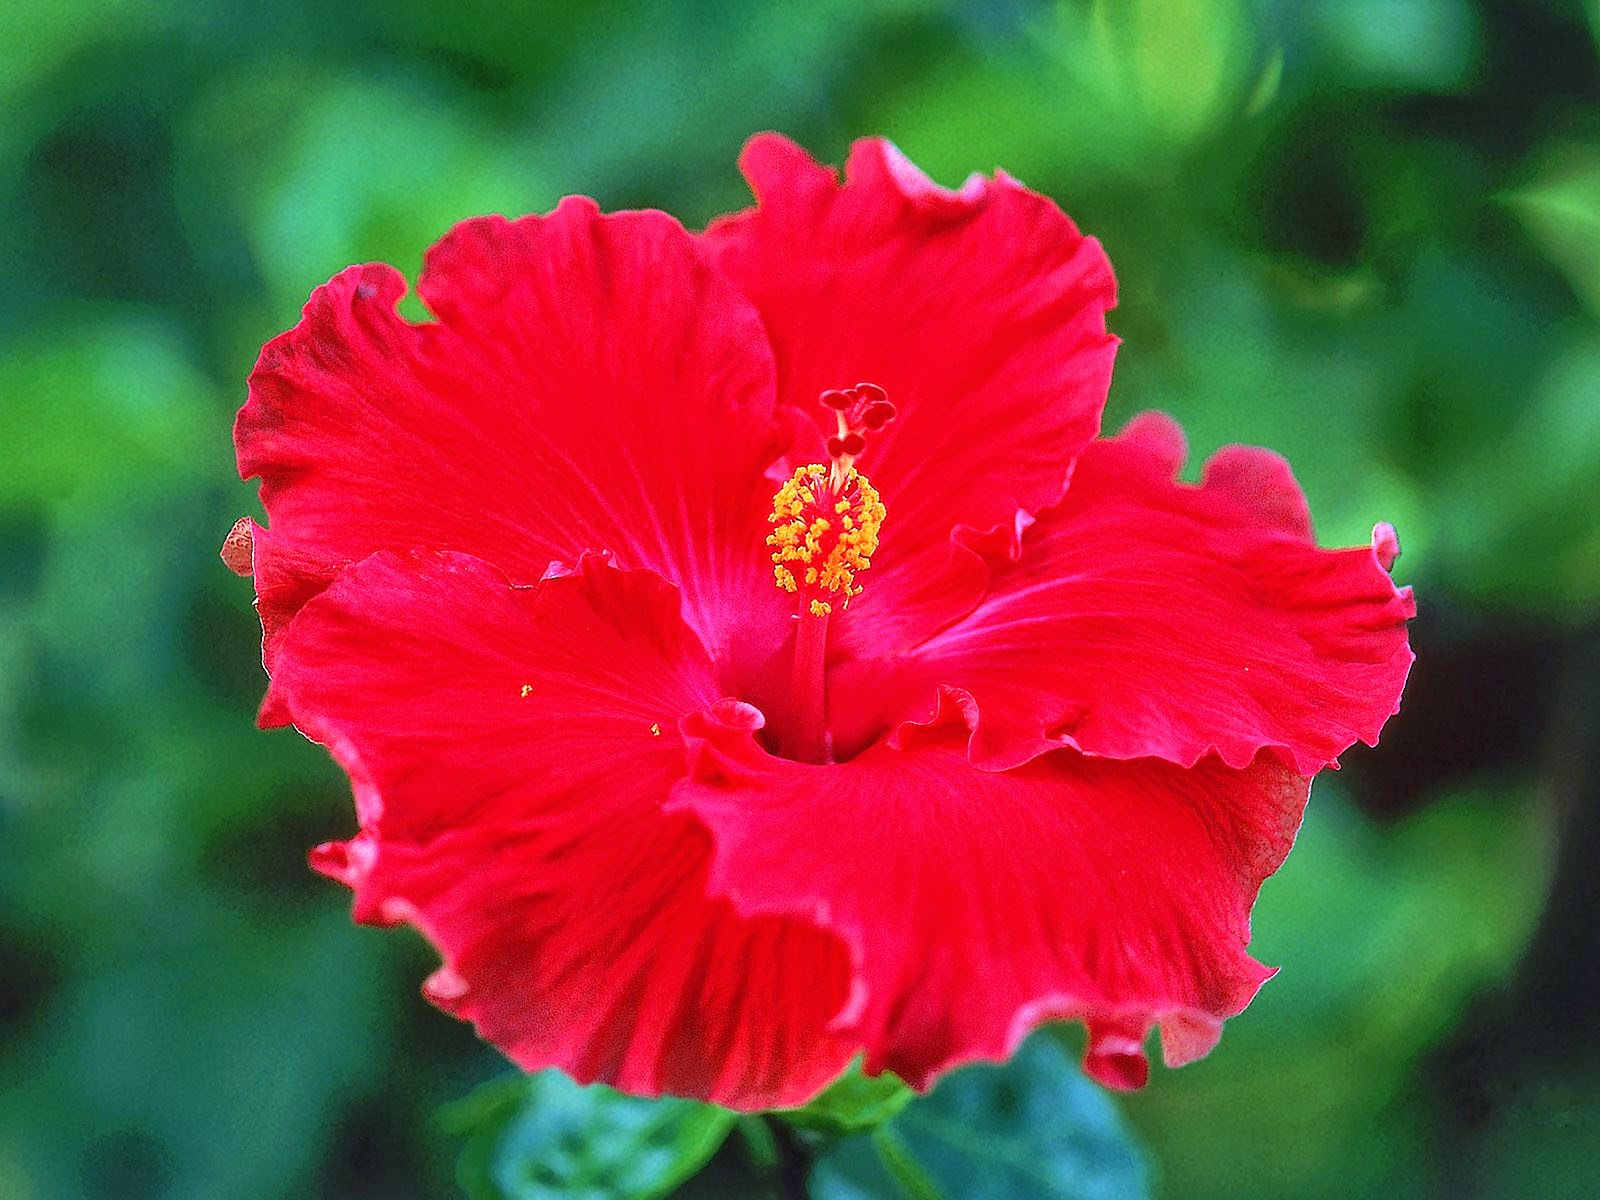 Making sense blossom every pcmb student must have surely dissected this flower in their 12th standard most people who will care to read my blog will have full knowledge of the izmirmasajfo